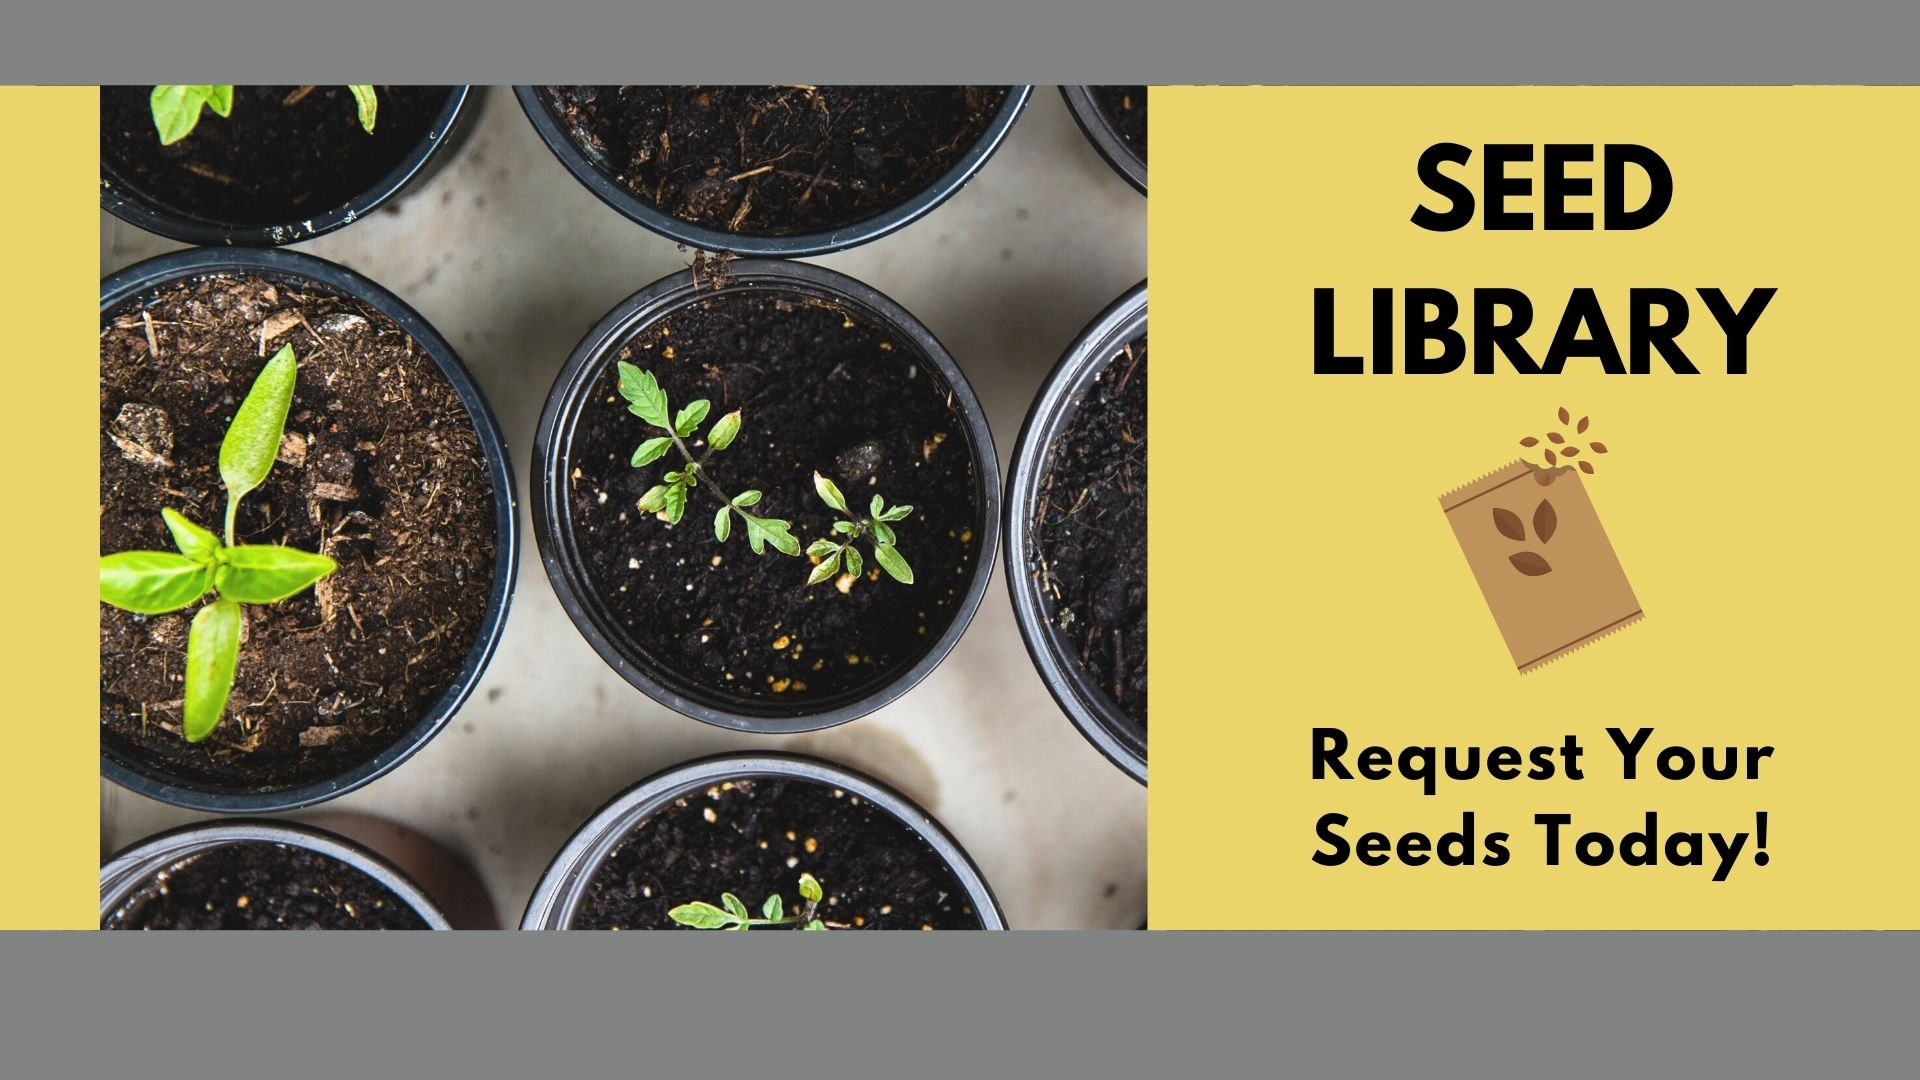 The Chatham Area Public Library Wants to Send You Seeds!